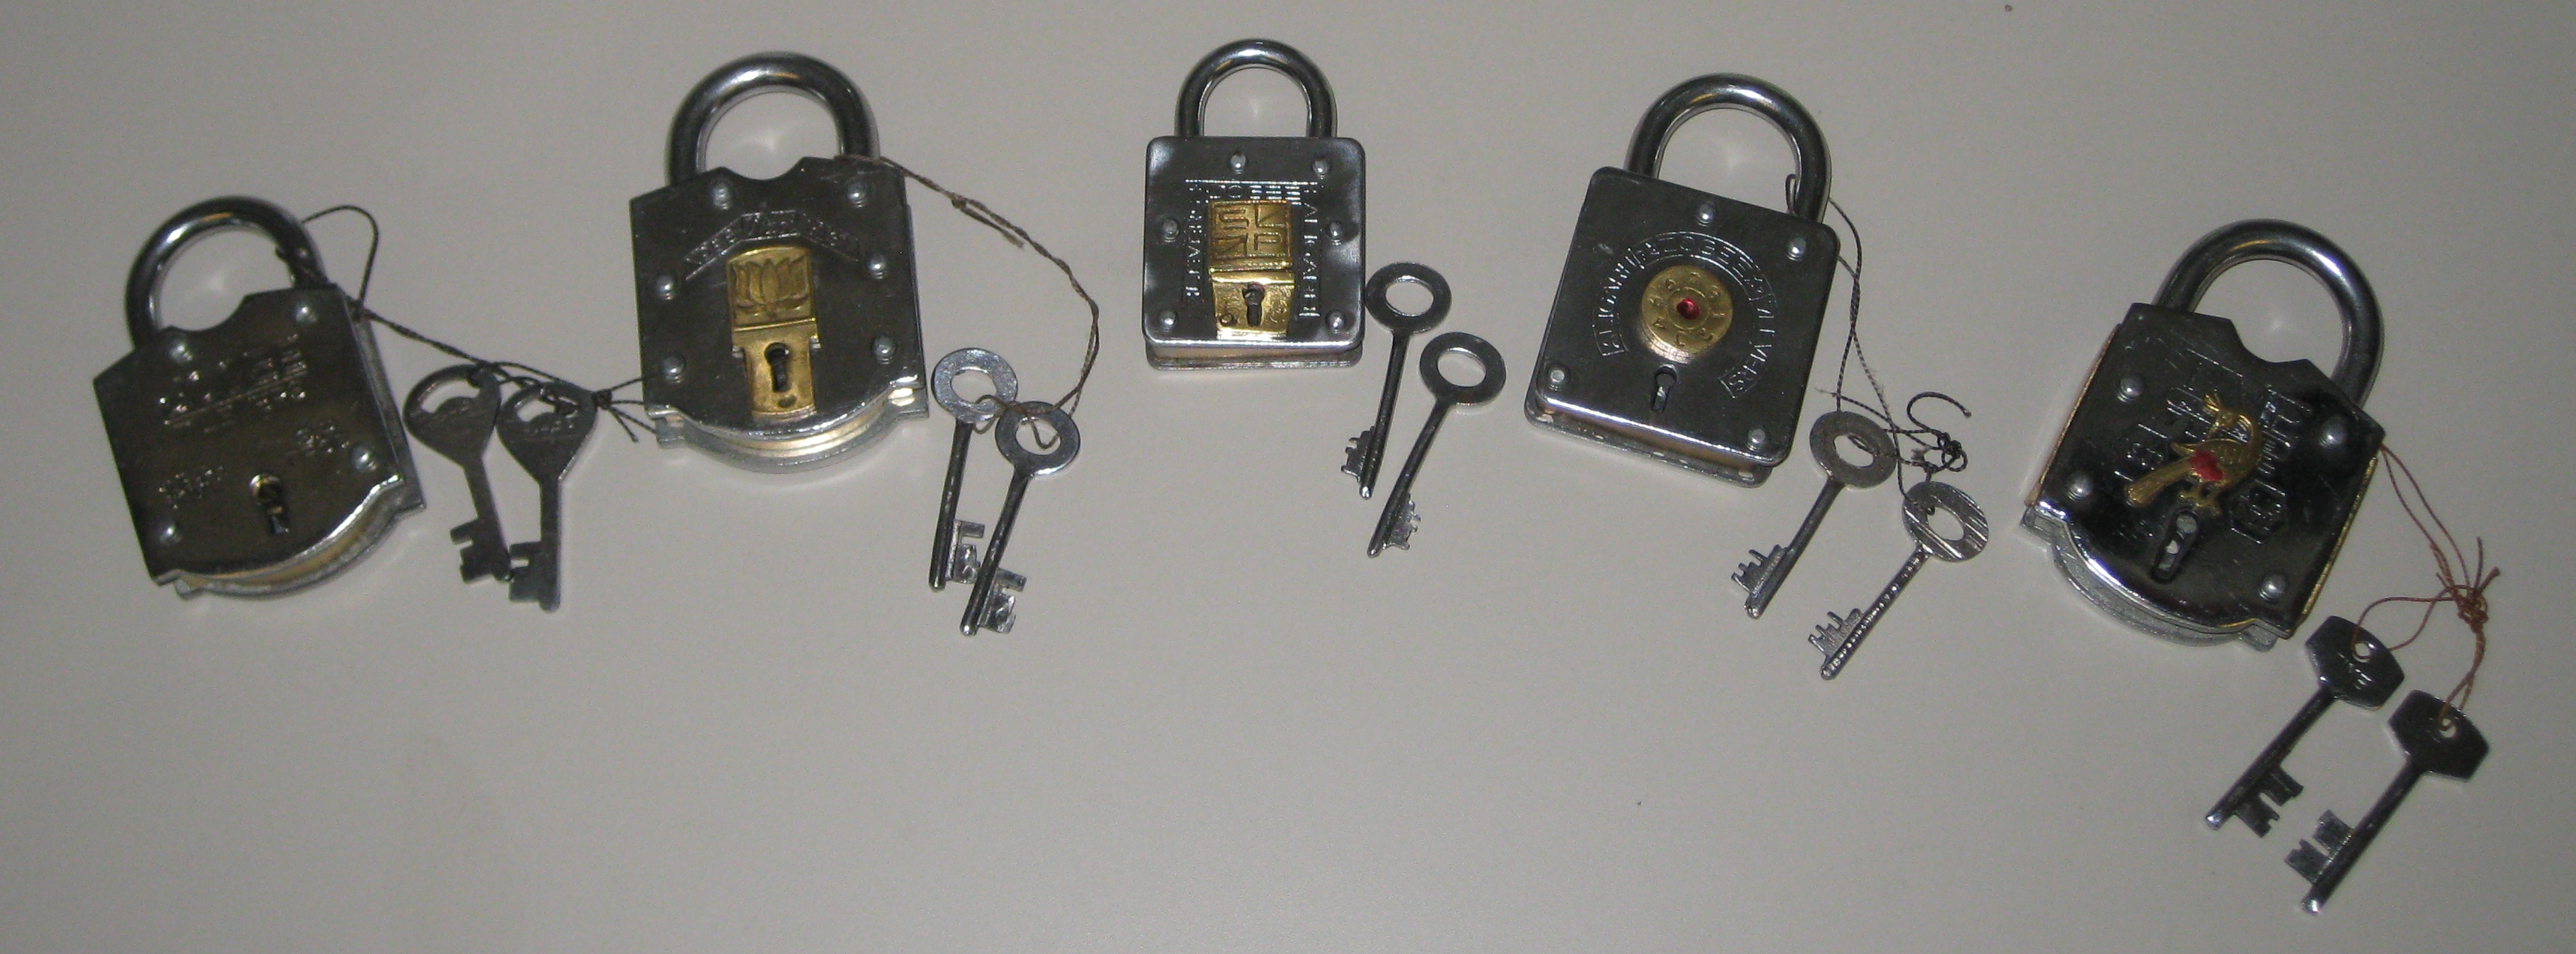 All 5 Puzzle Locks